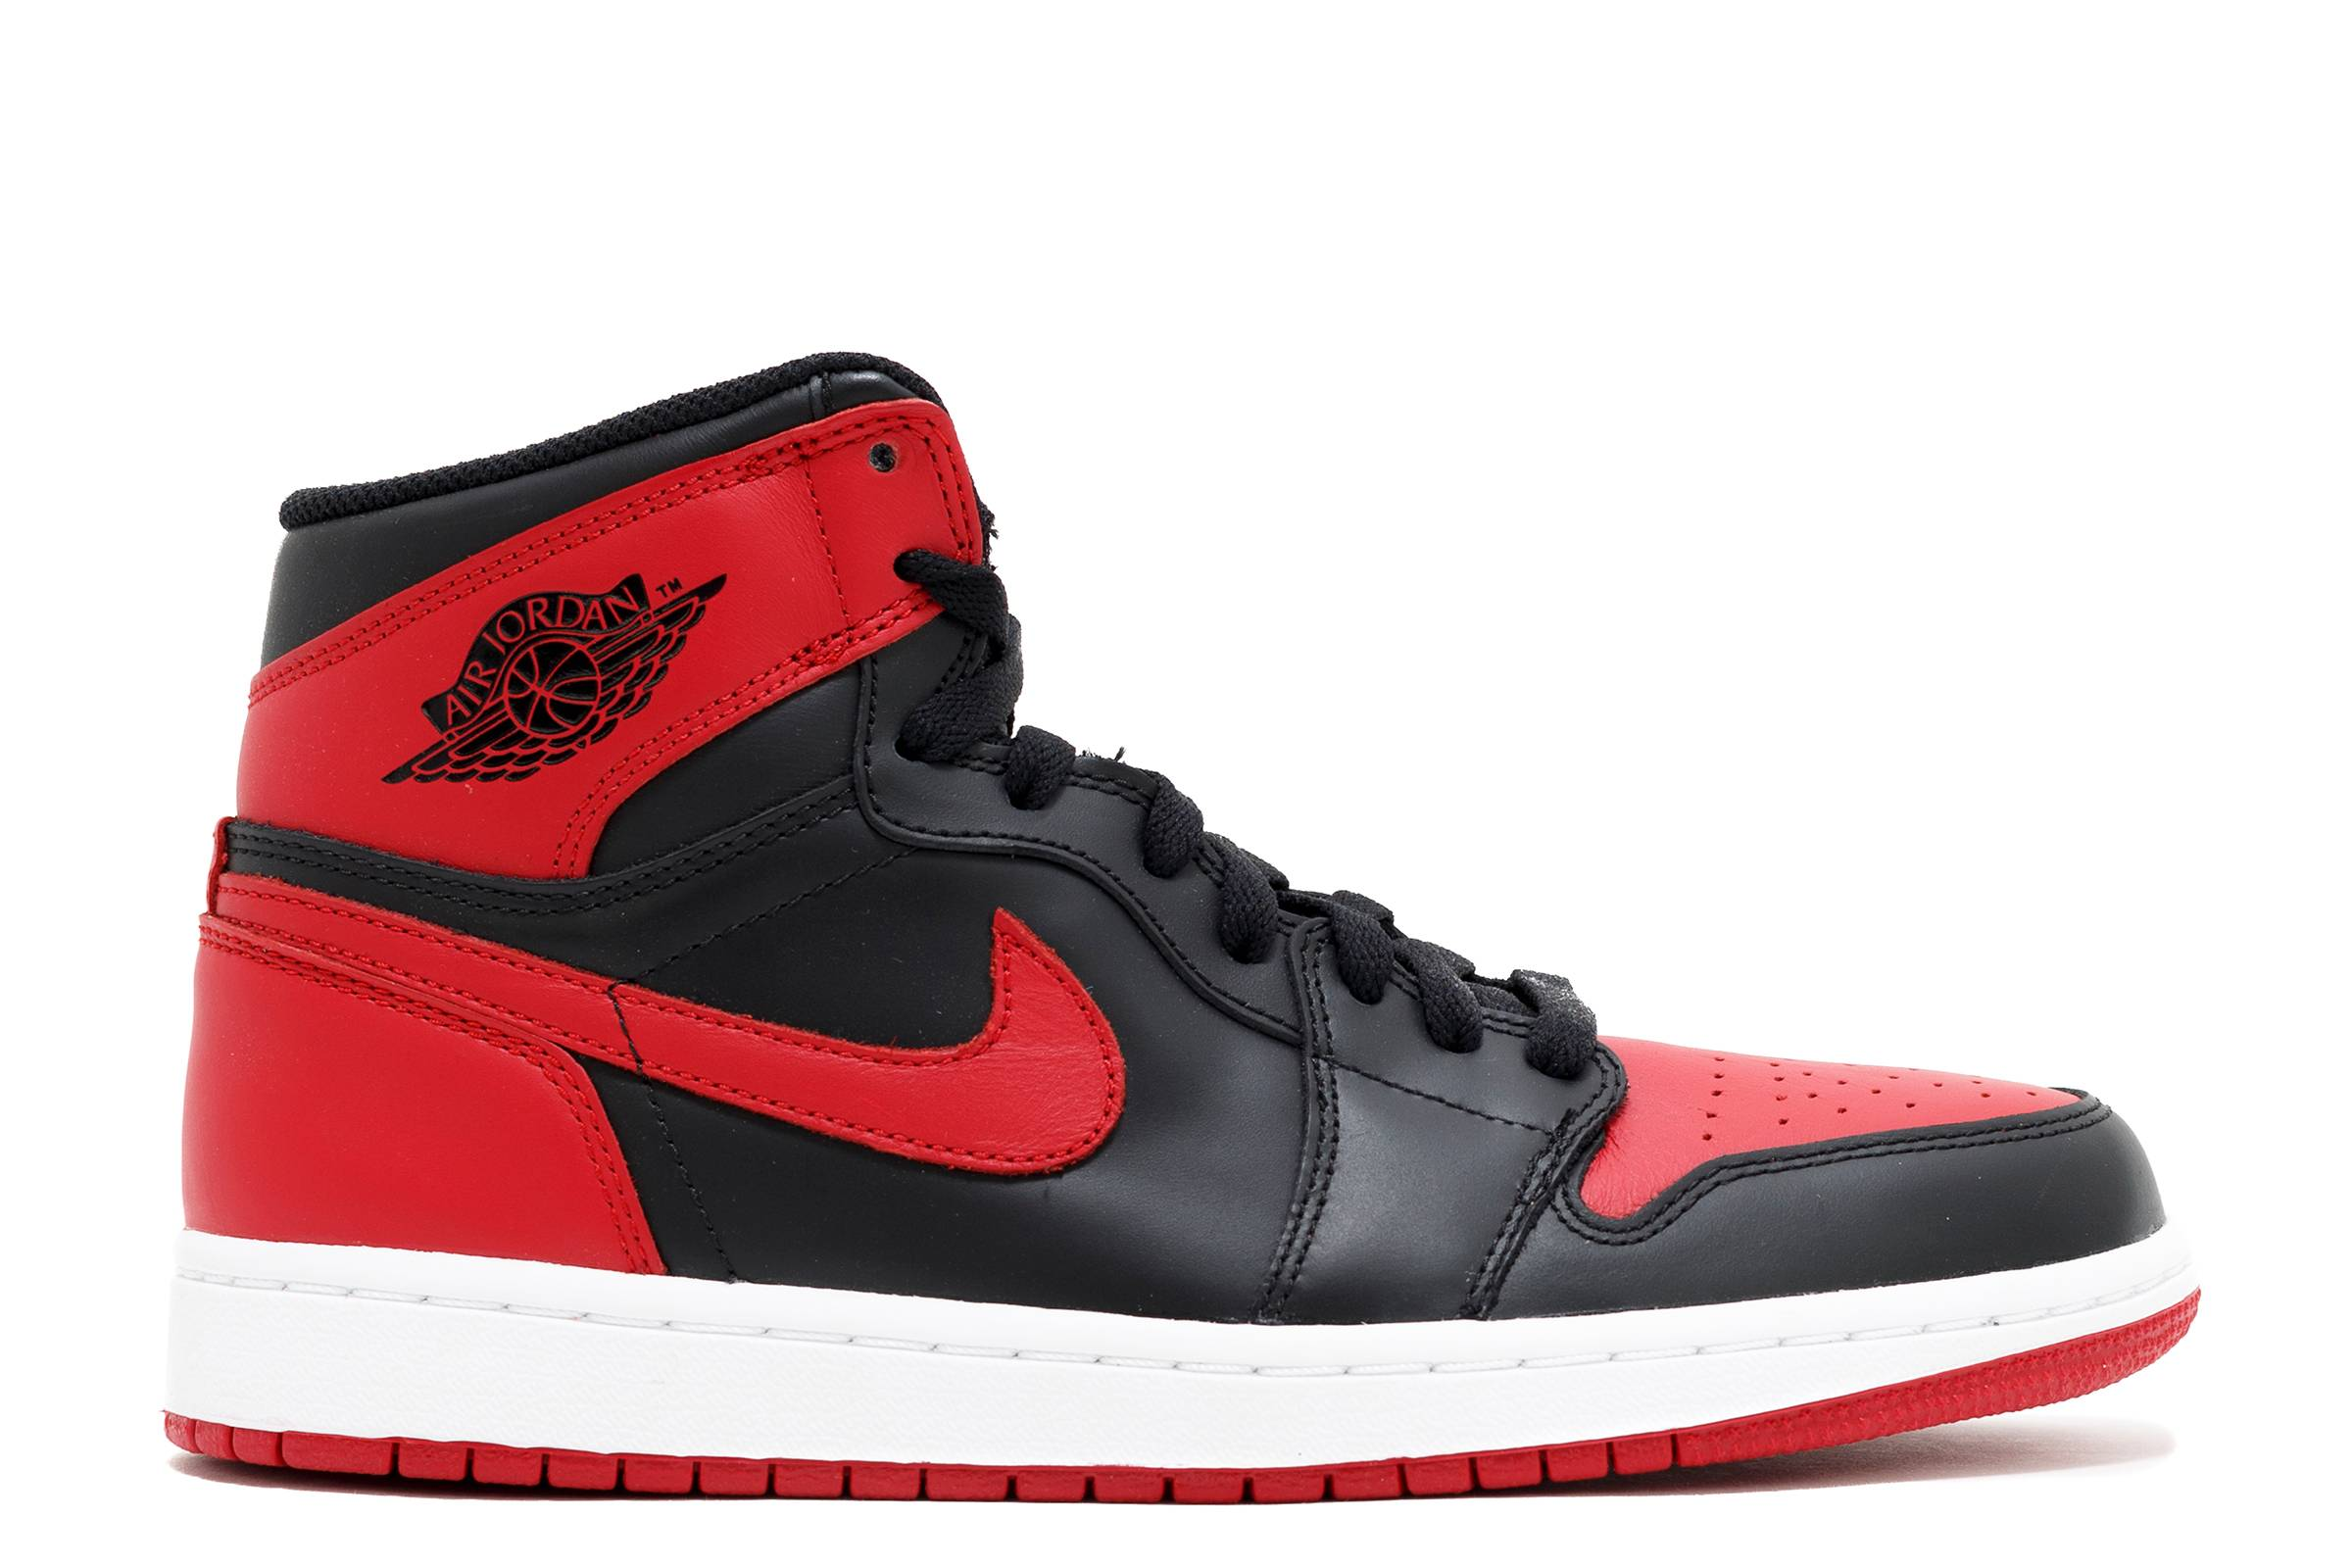 f521e7248d5 The One That Started It All  A History of the Jordan 1 - Jordan 1 ...